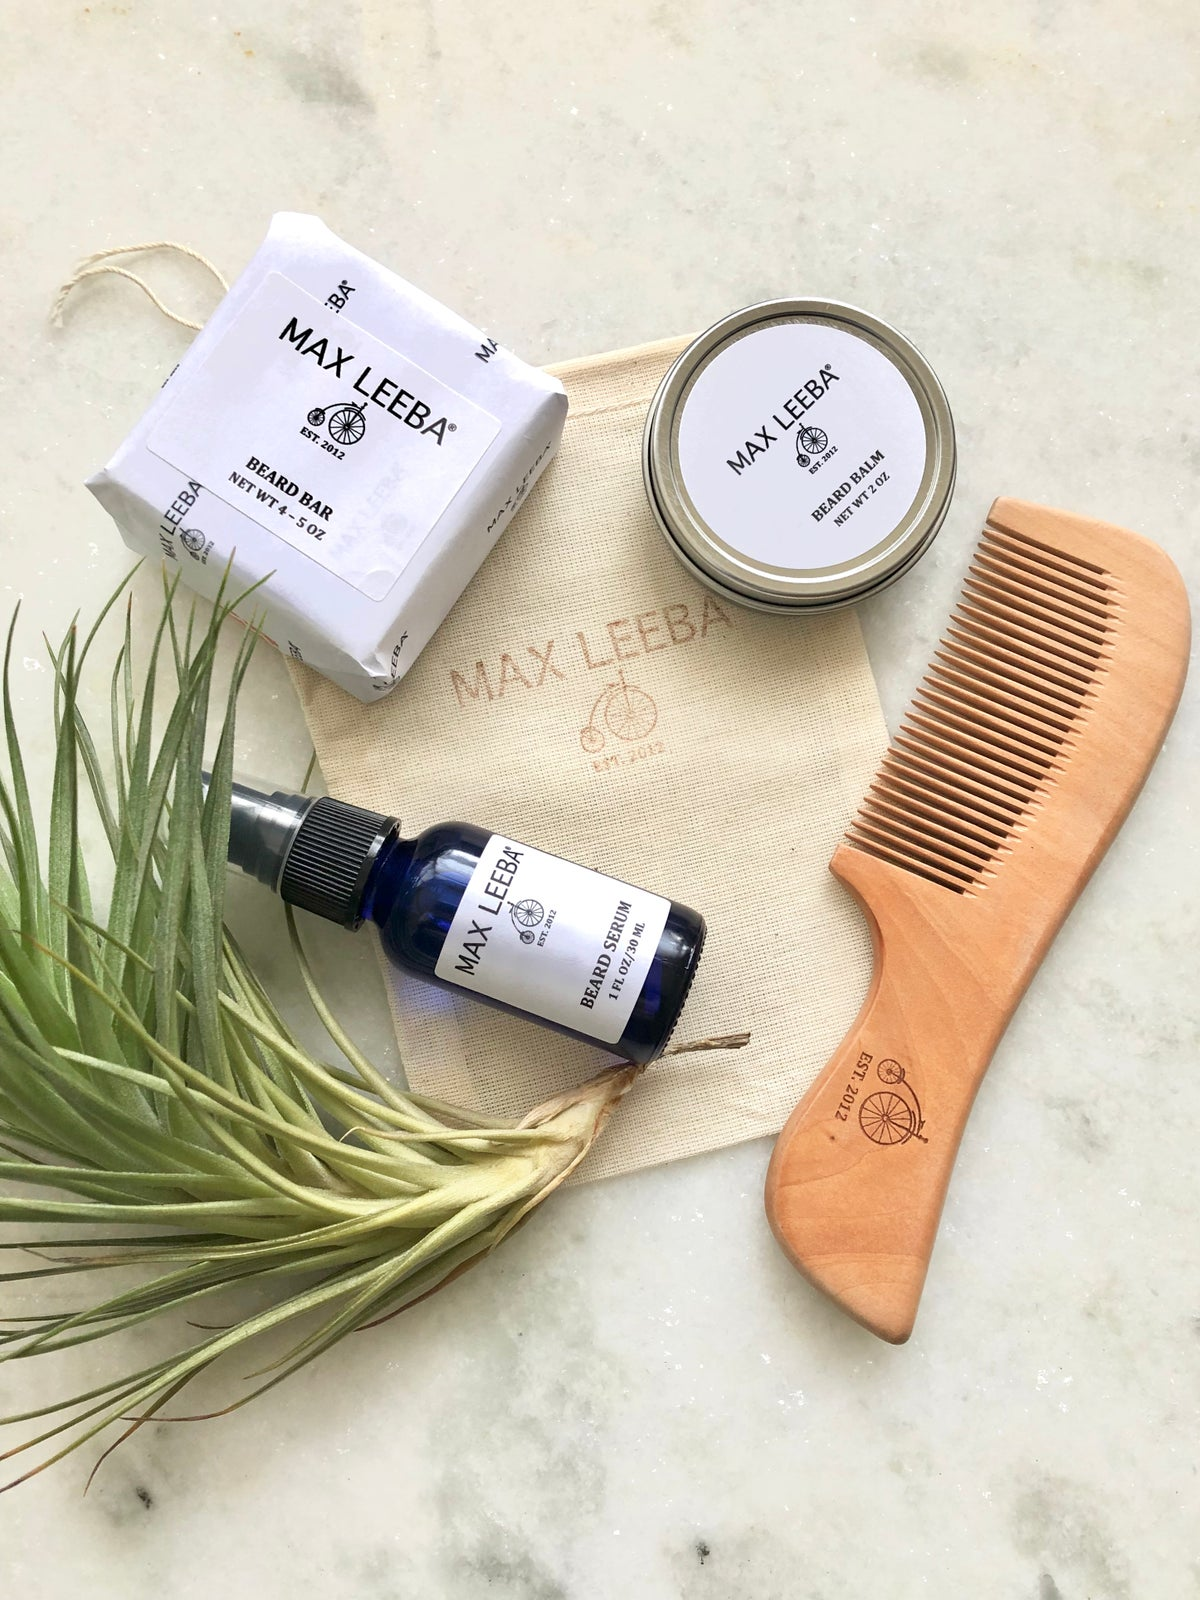 Image of Men's Grooming Set